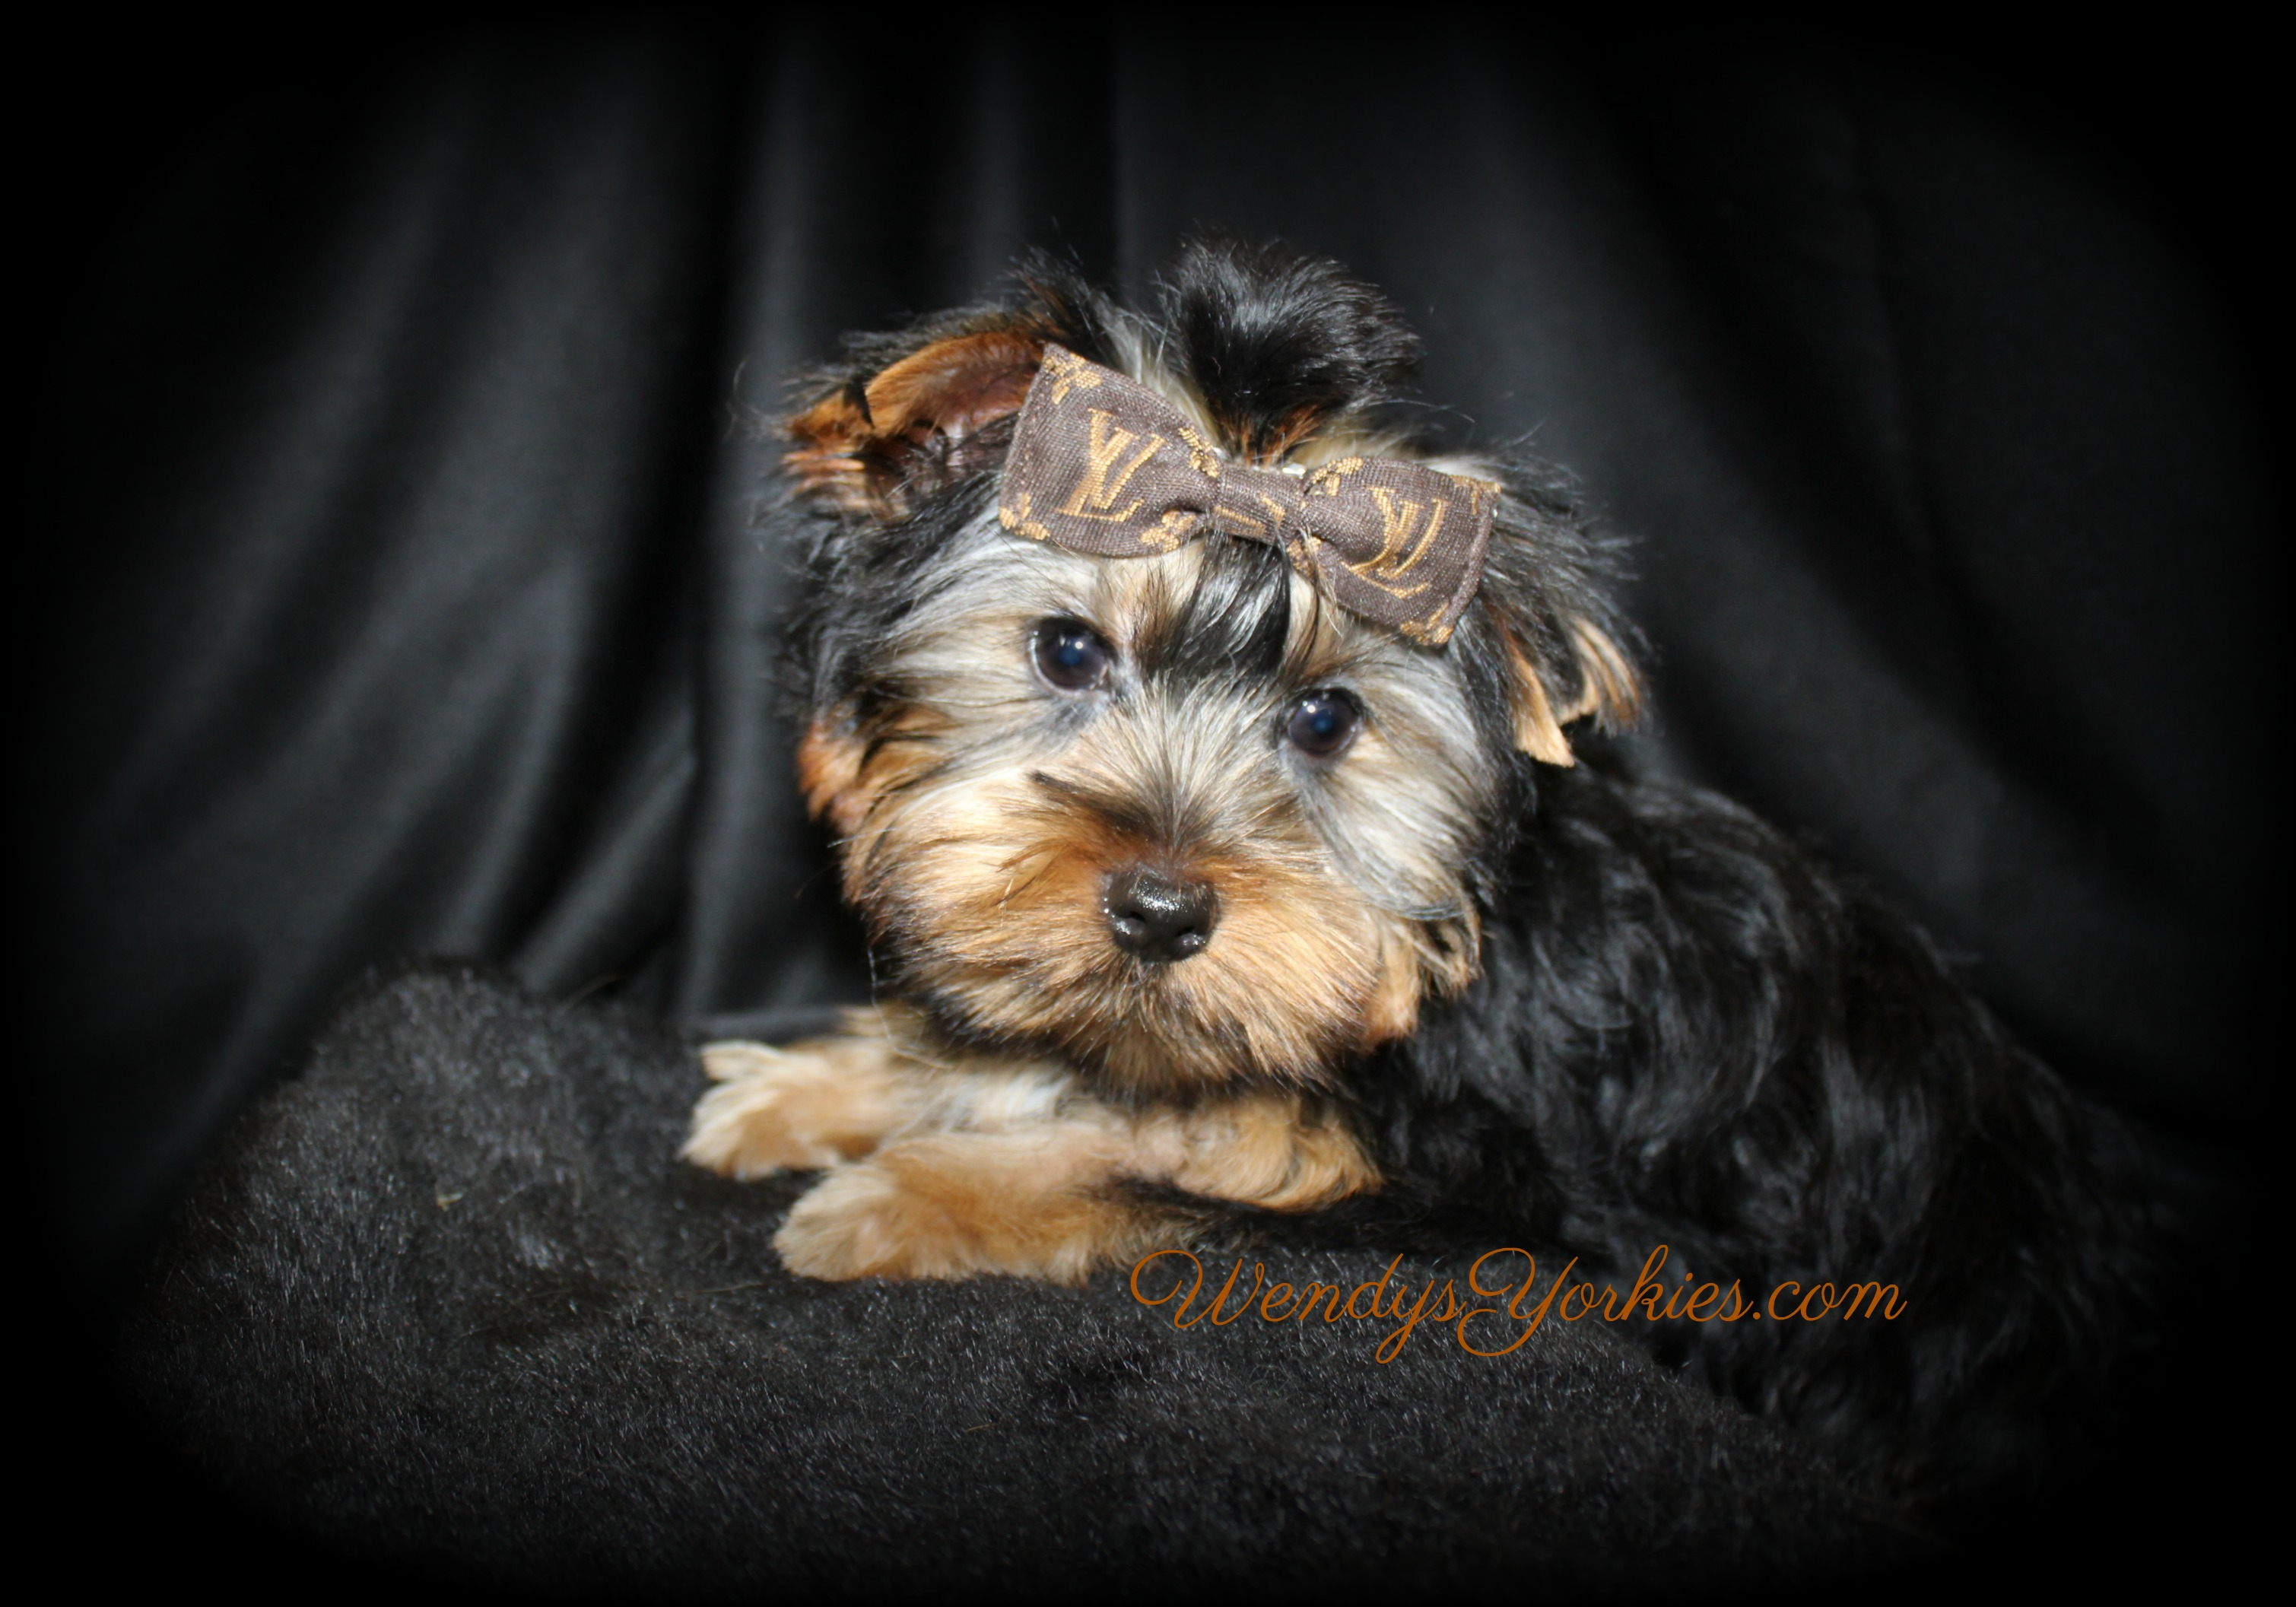 Teacup Male YOrkie puppy for sale, Star m2, WendysYorkies.com